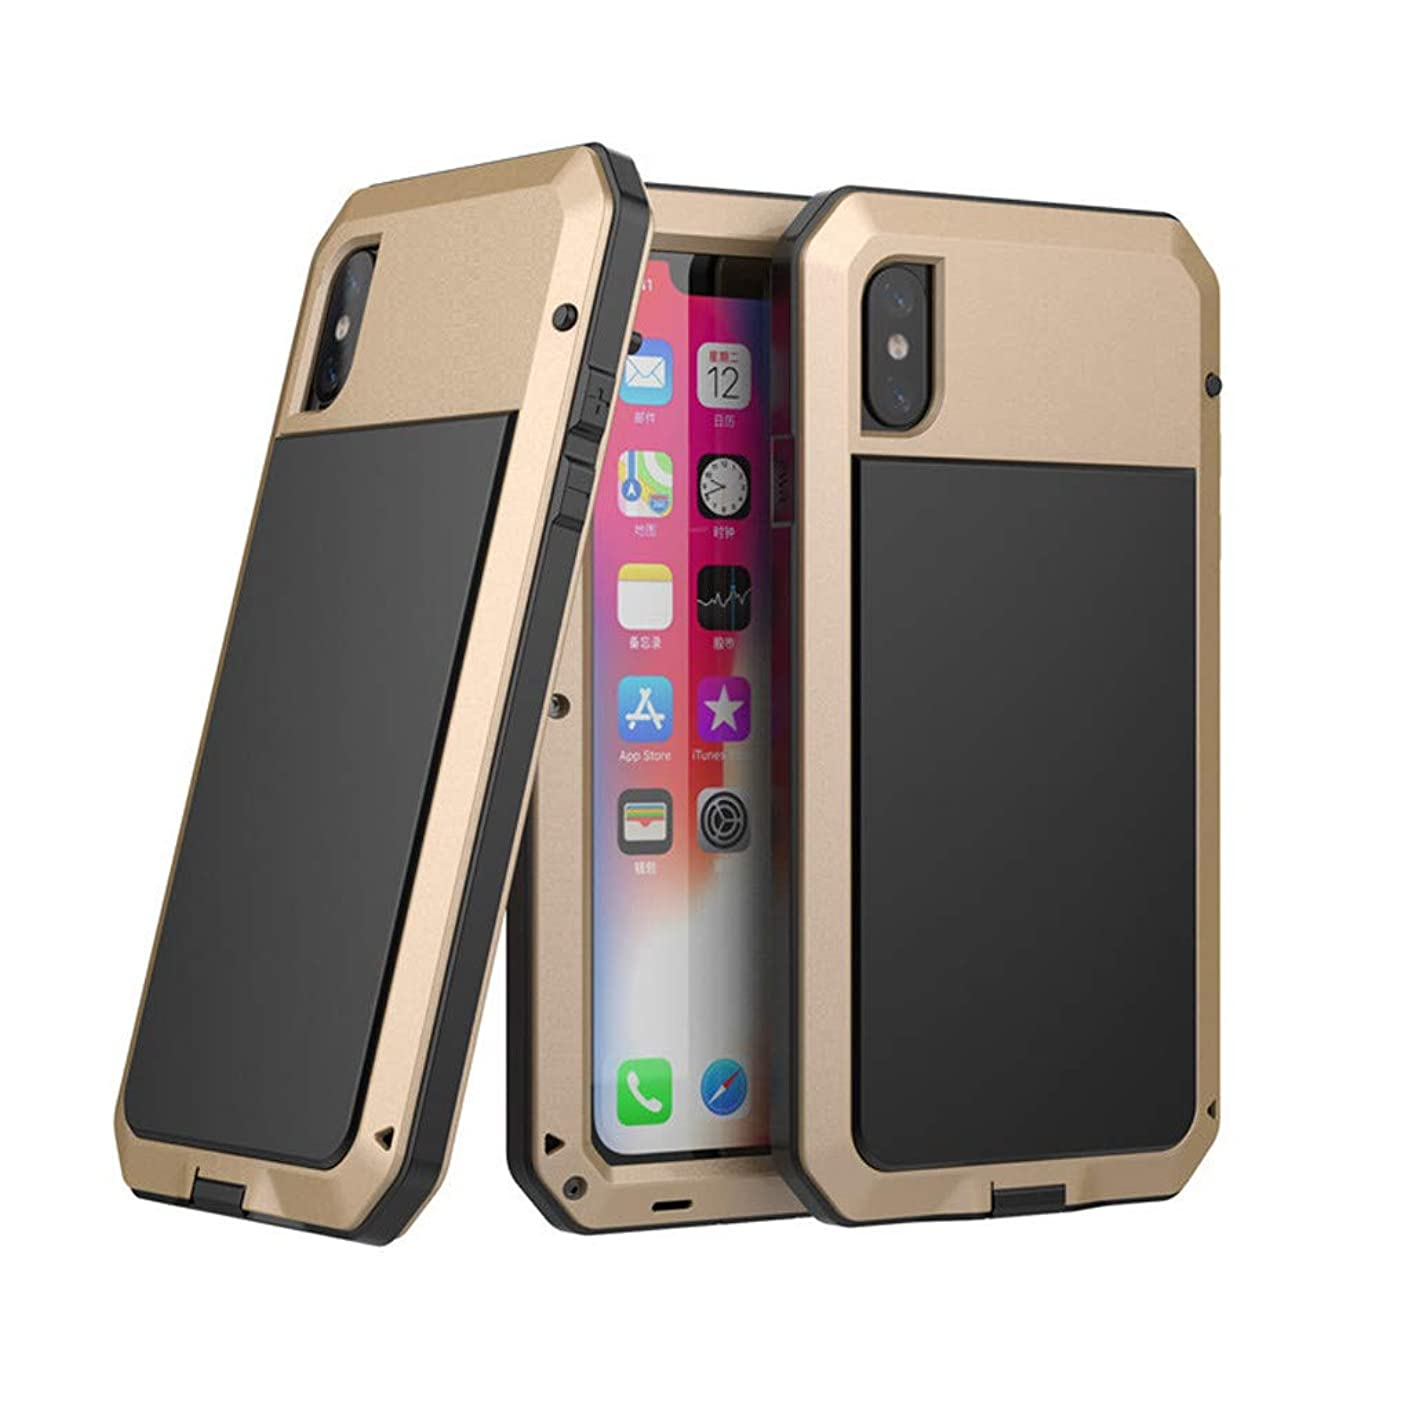 AutumnFall 360° Full Body Protective Tough Rugged Hybrid Waterproof Case Fashion Phone Case for iPhone Xs Max (Gold)